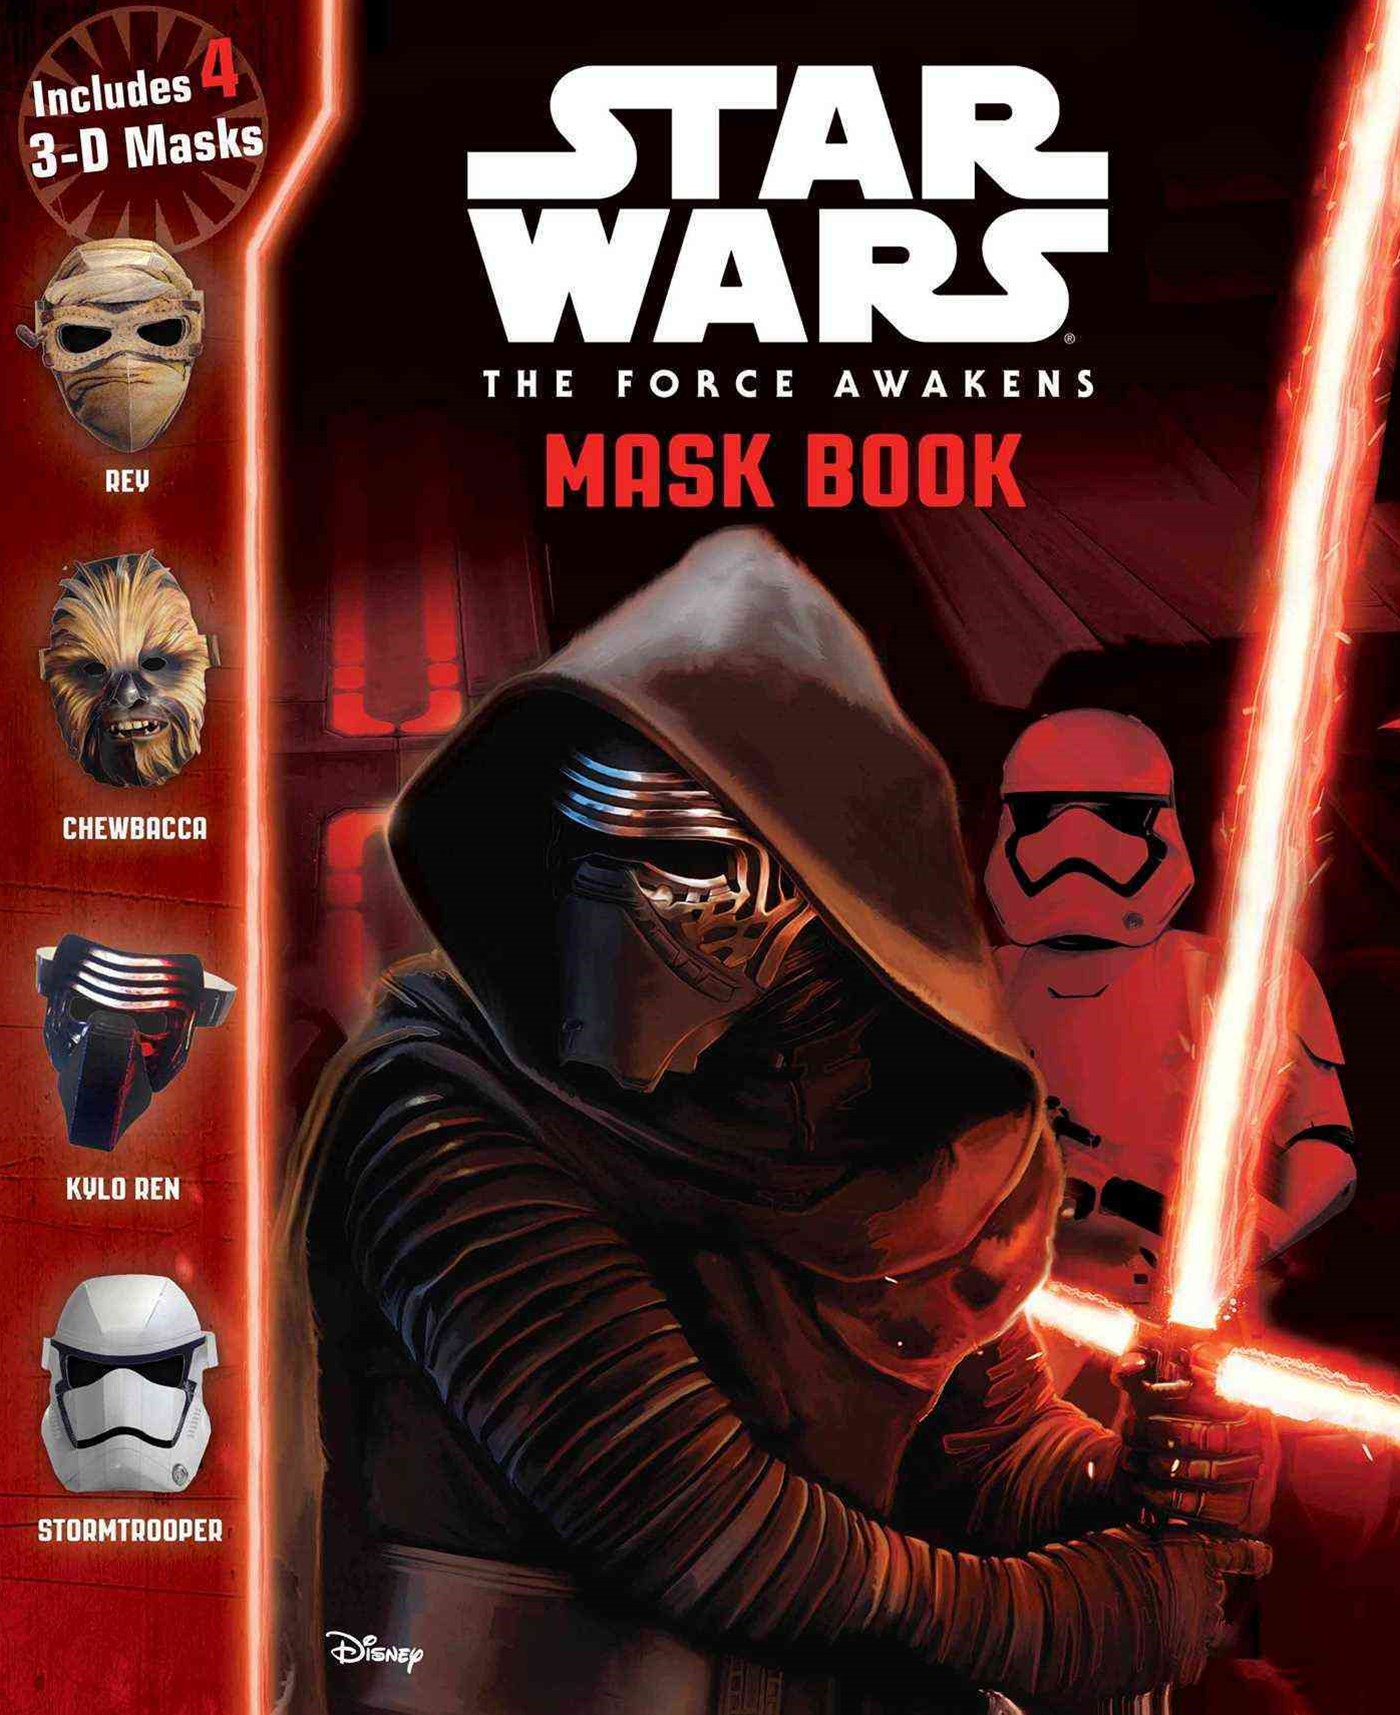 Star Wars - The Force Awakens Mask Book